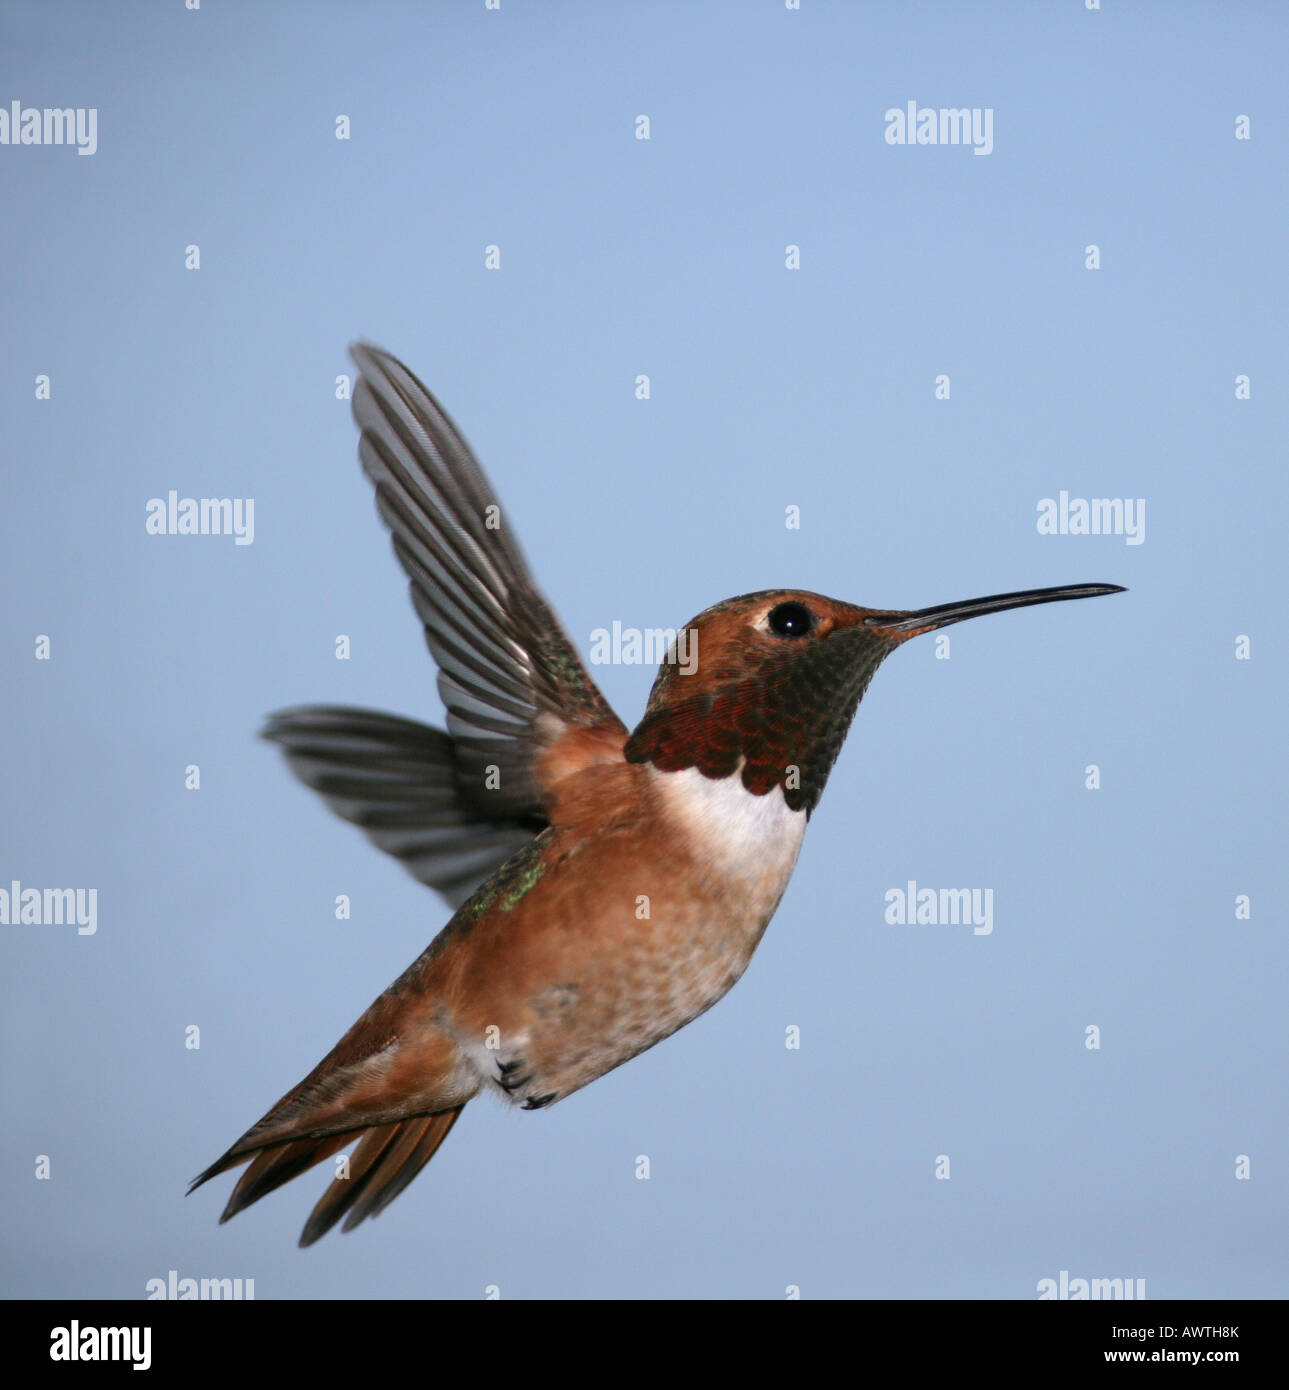 An Allen's Hummingbird, hovering with wings extended back, side view with a blue sky background - Stock Image